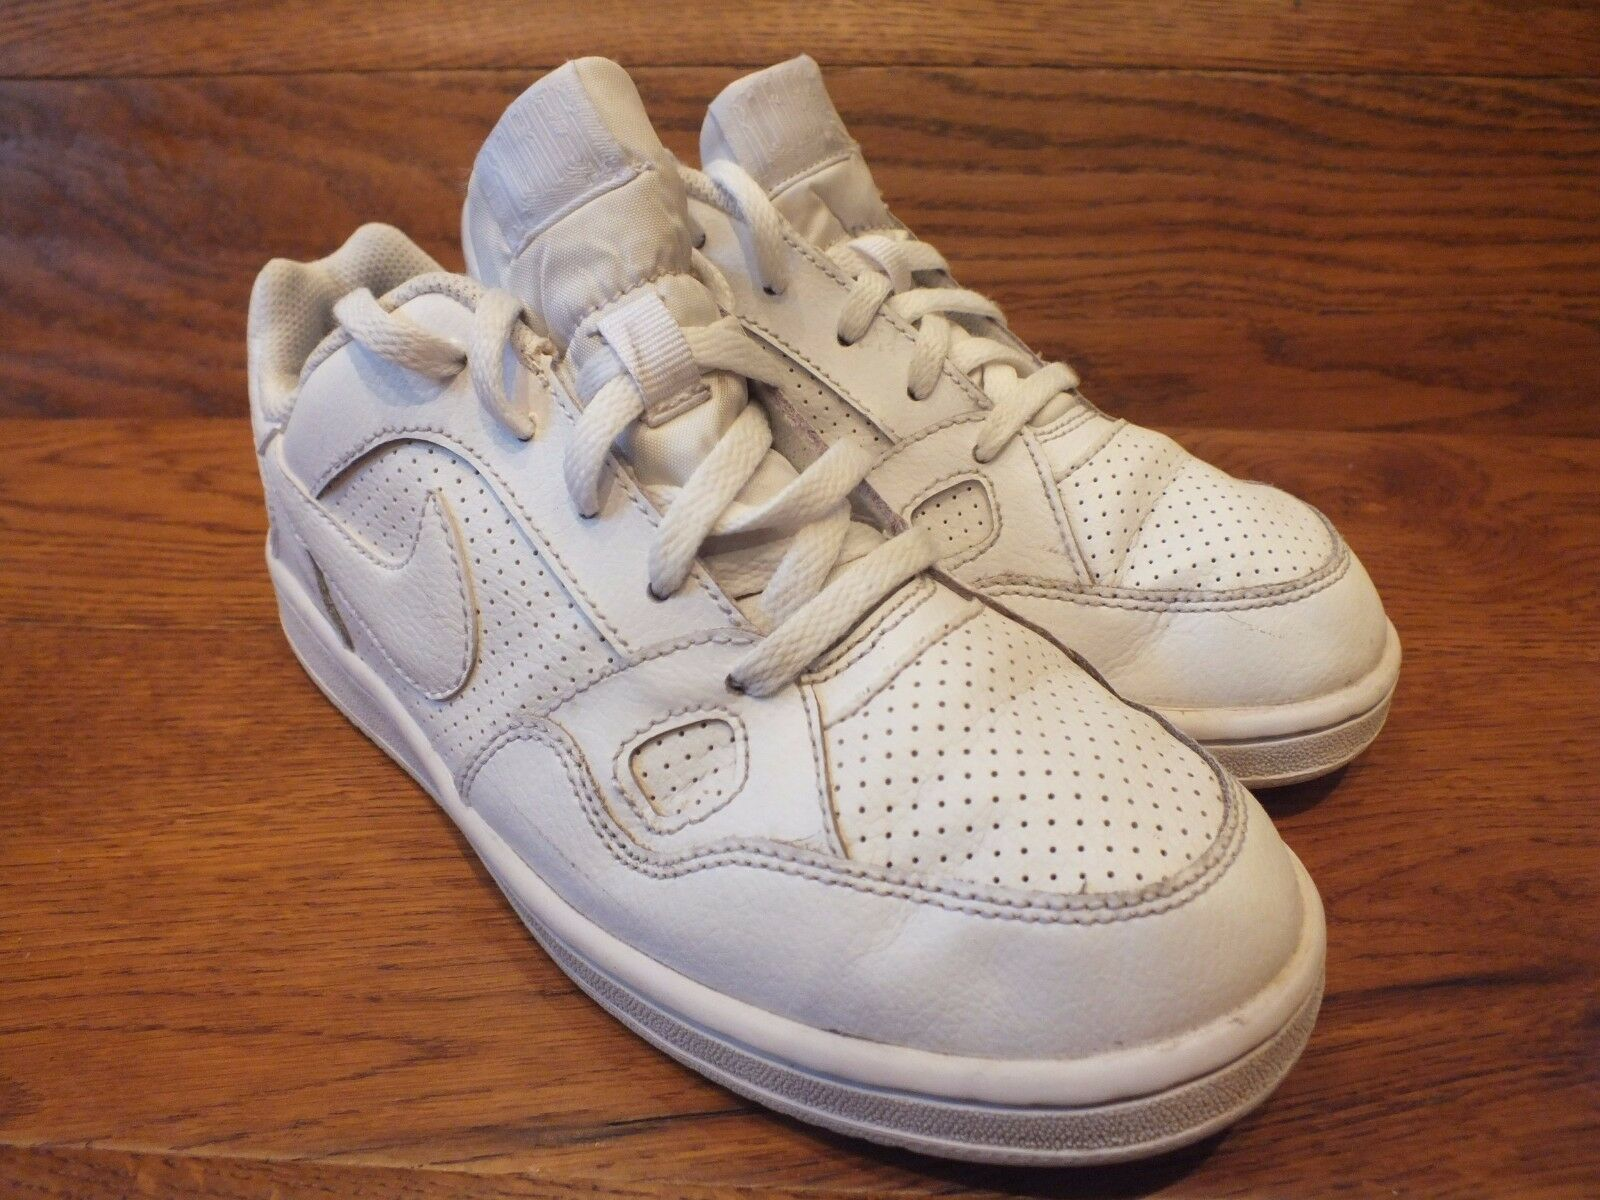 Nike Son Of Force White Leather Casual Trainers  Wild casual shoes